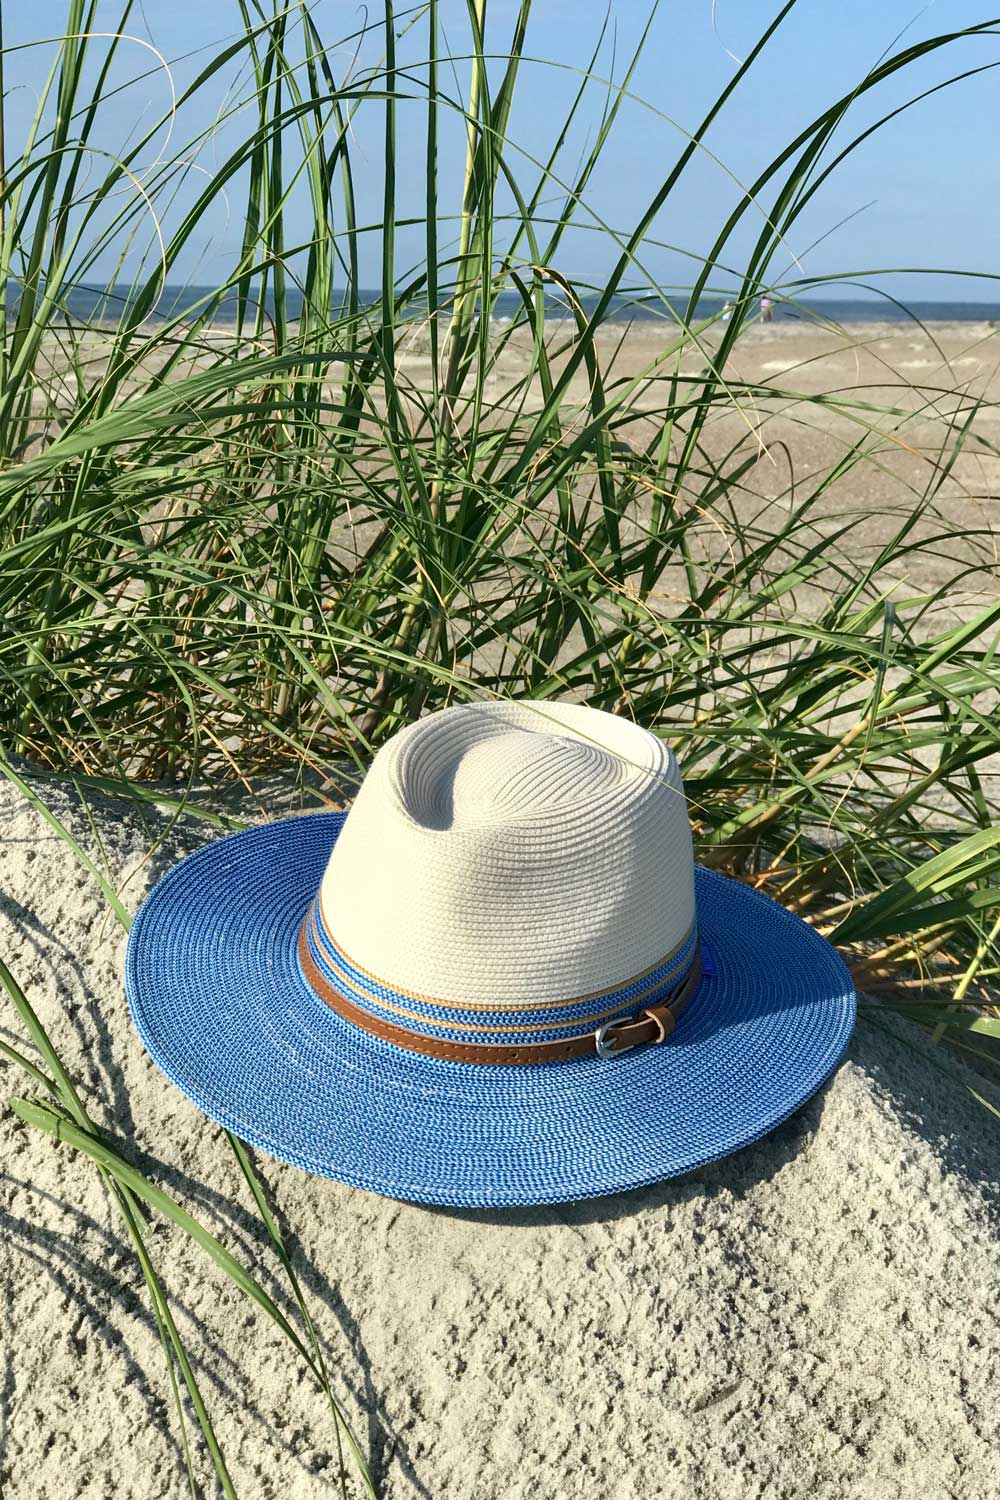 Finally, a cute lightweight sun hat that's UPF 50+! Stay cool and protect your face from harmful ultraviolet rays while at the beach, shopping or sightseeing. The perfect sun hat for women who love the beach! #sunhats #beachhat